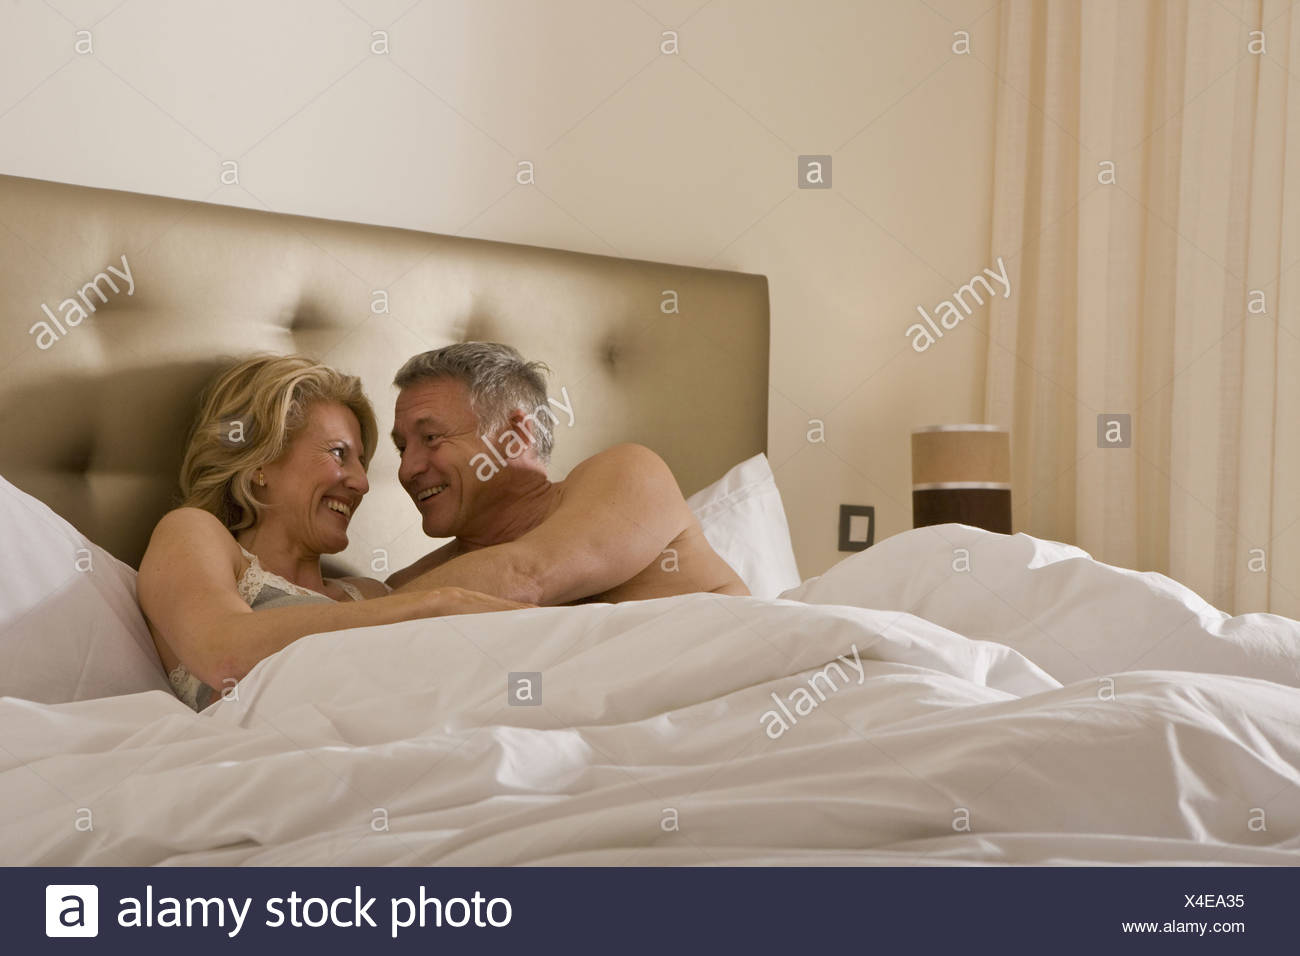 Mature couple embracing tenderly in bed - Stock Image